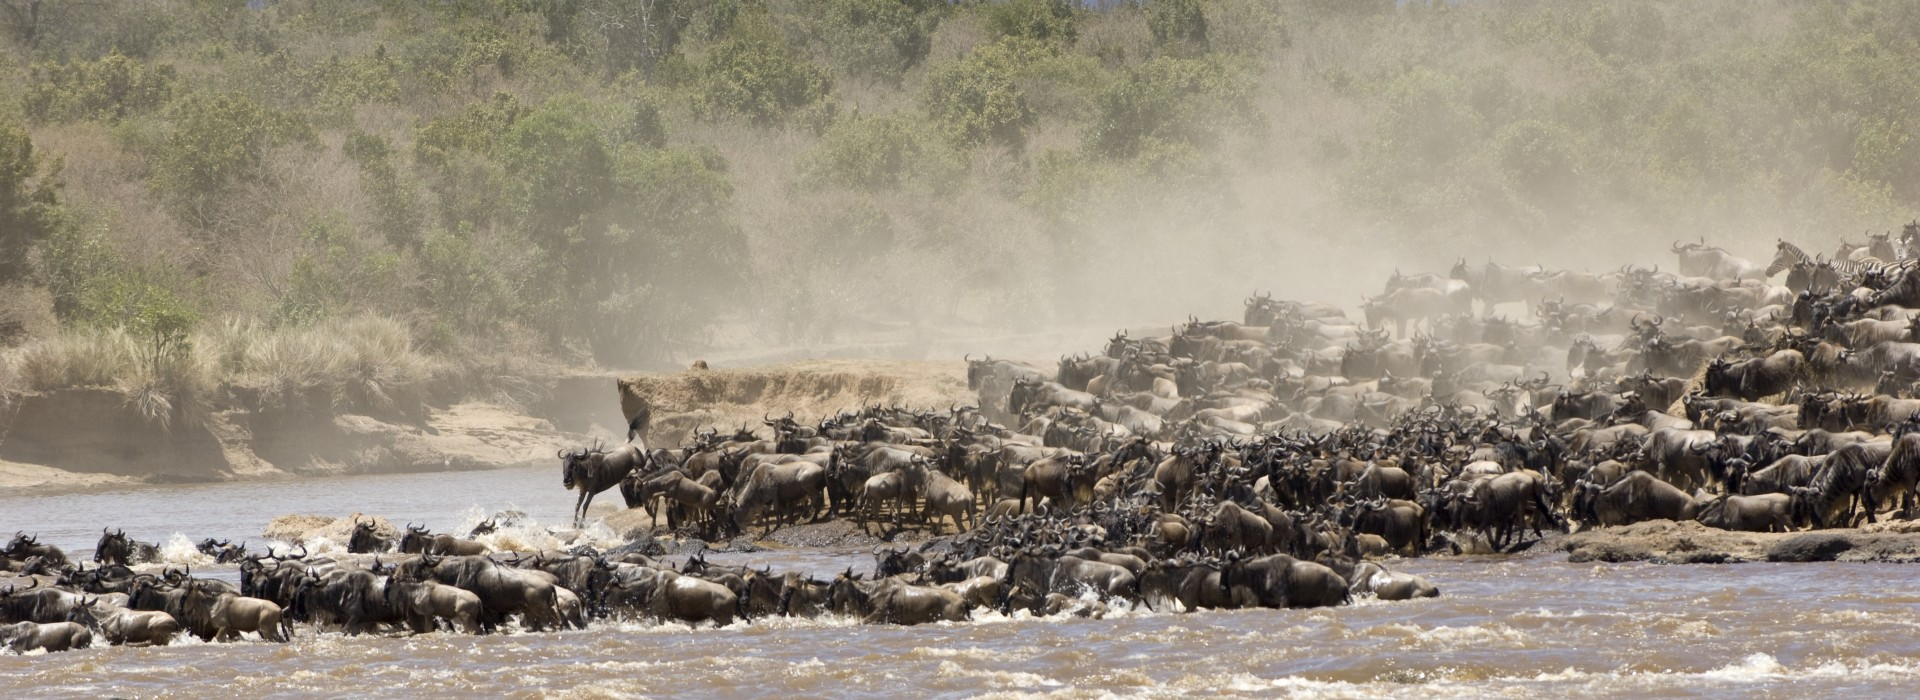 The great migration in the Serengeti National Park